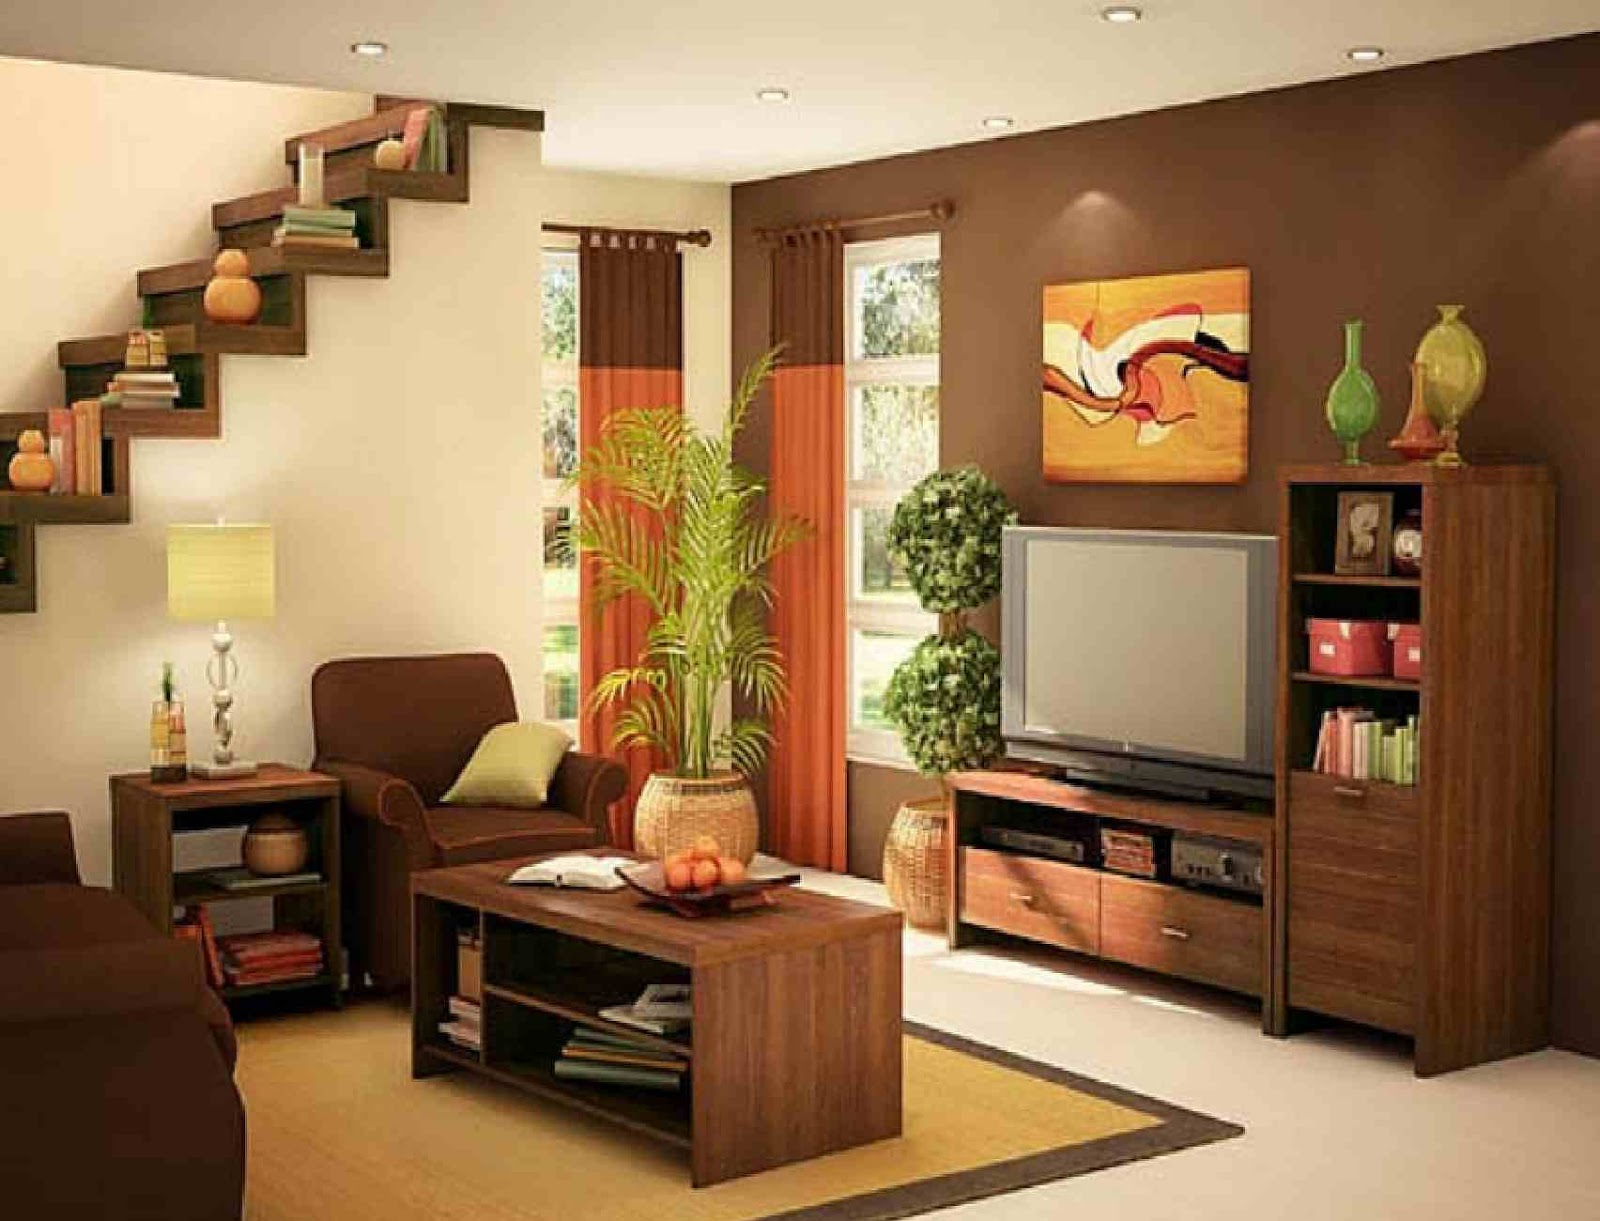 Home interior designs simple living room designs Simple decorating ideas for living room